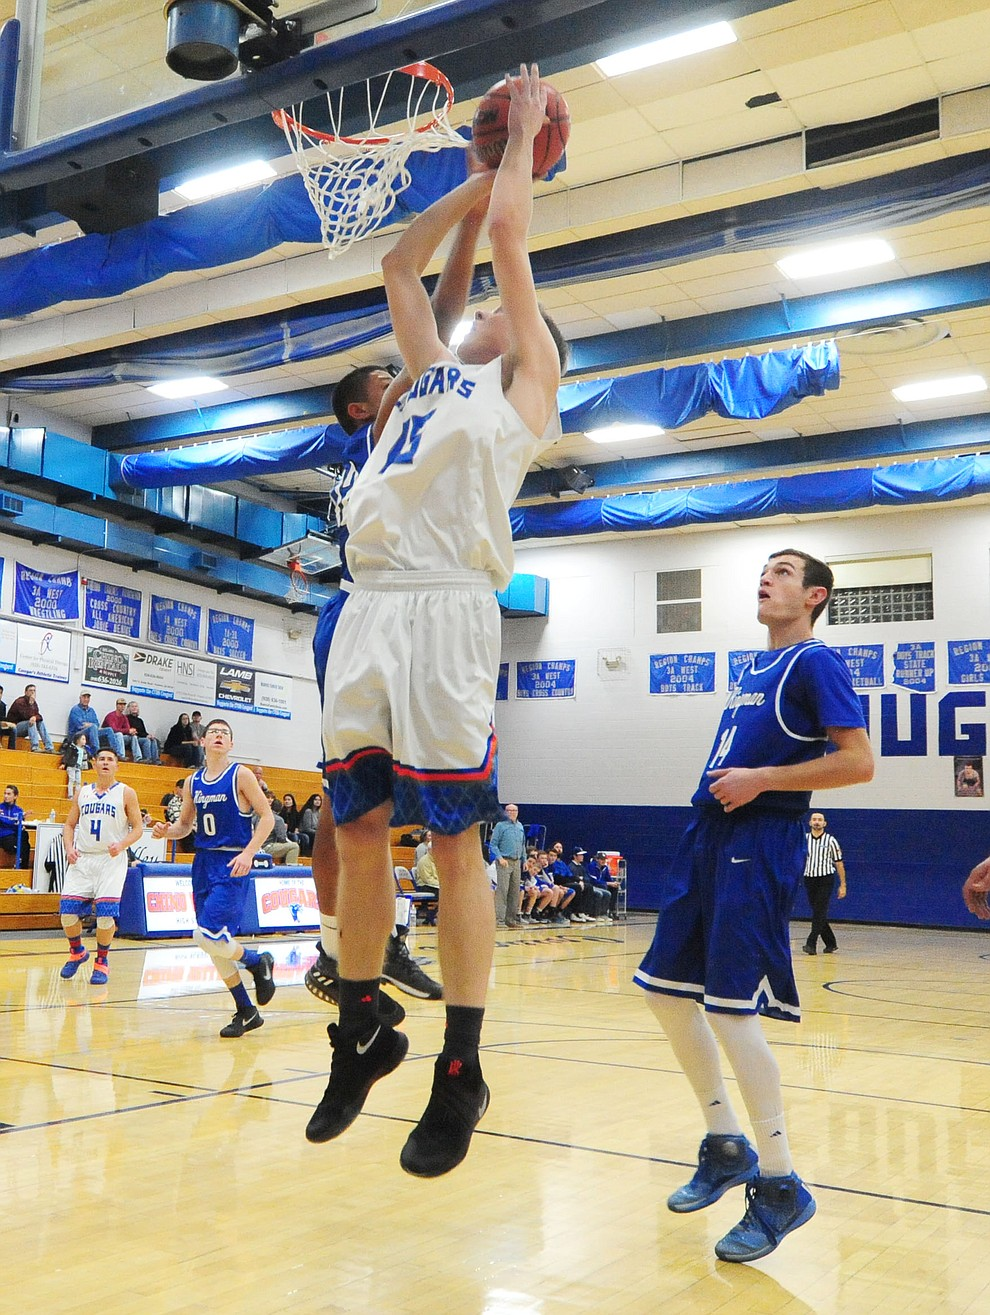 Chino Valley's Gavin Cluff goes to the hoop as the Cougars take on the Kingman Bulldogs Tuesday, January 10 in Chino Vallley. (Les Stukenberg/The Daily Courier)